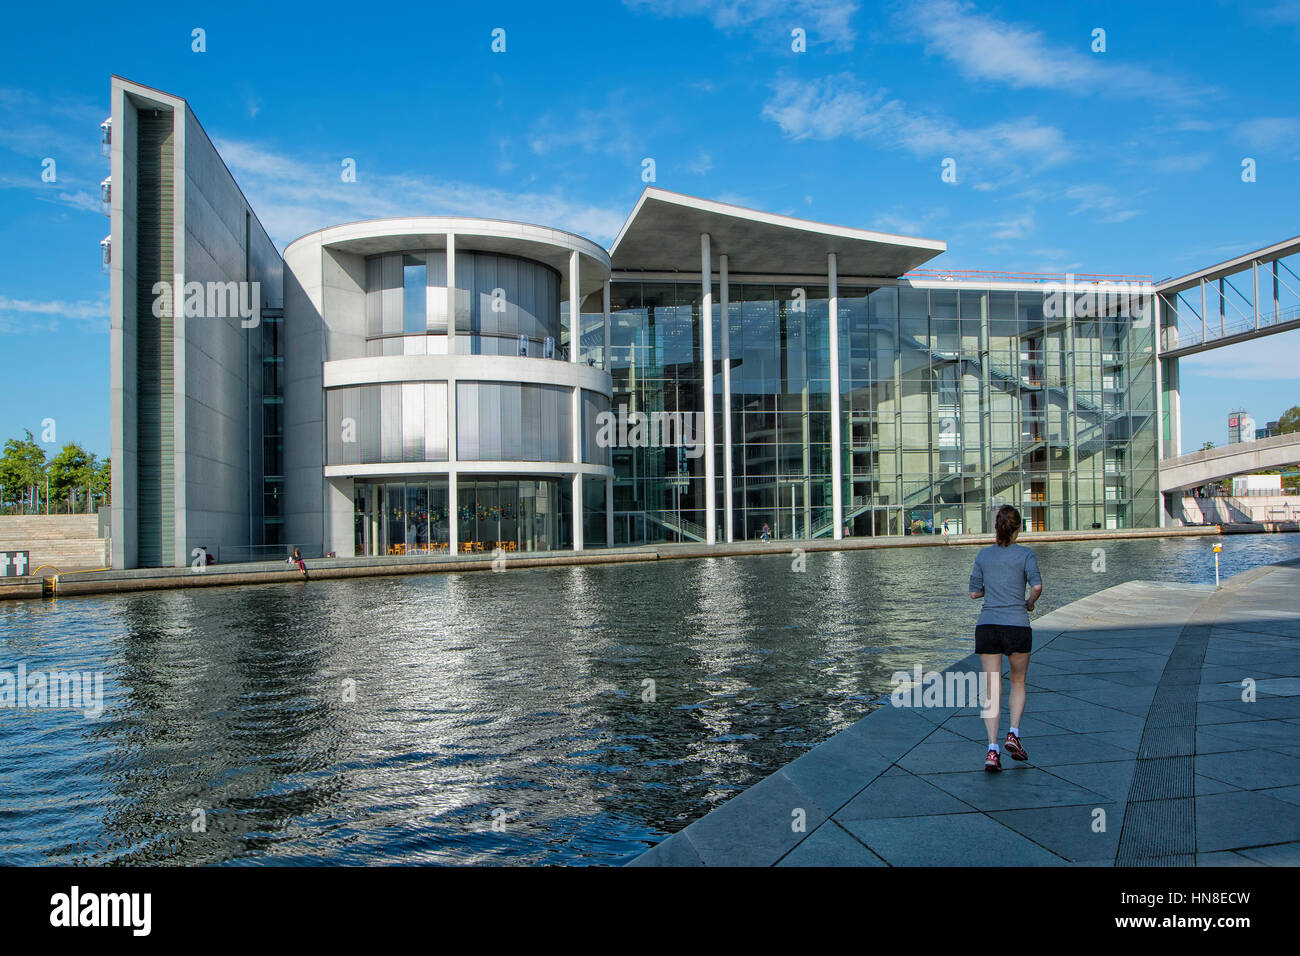 Paul Lobe Haus  building - Stock Image